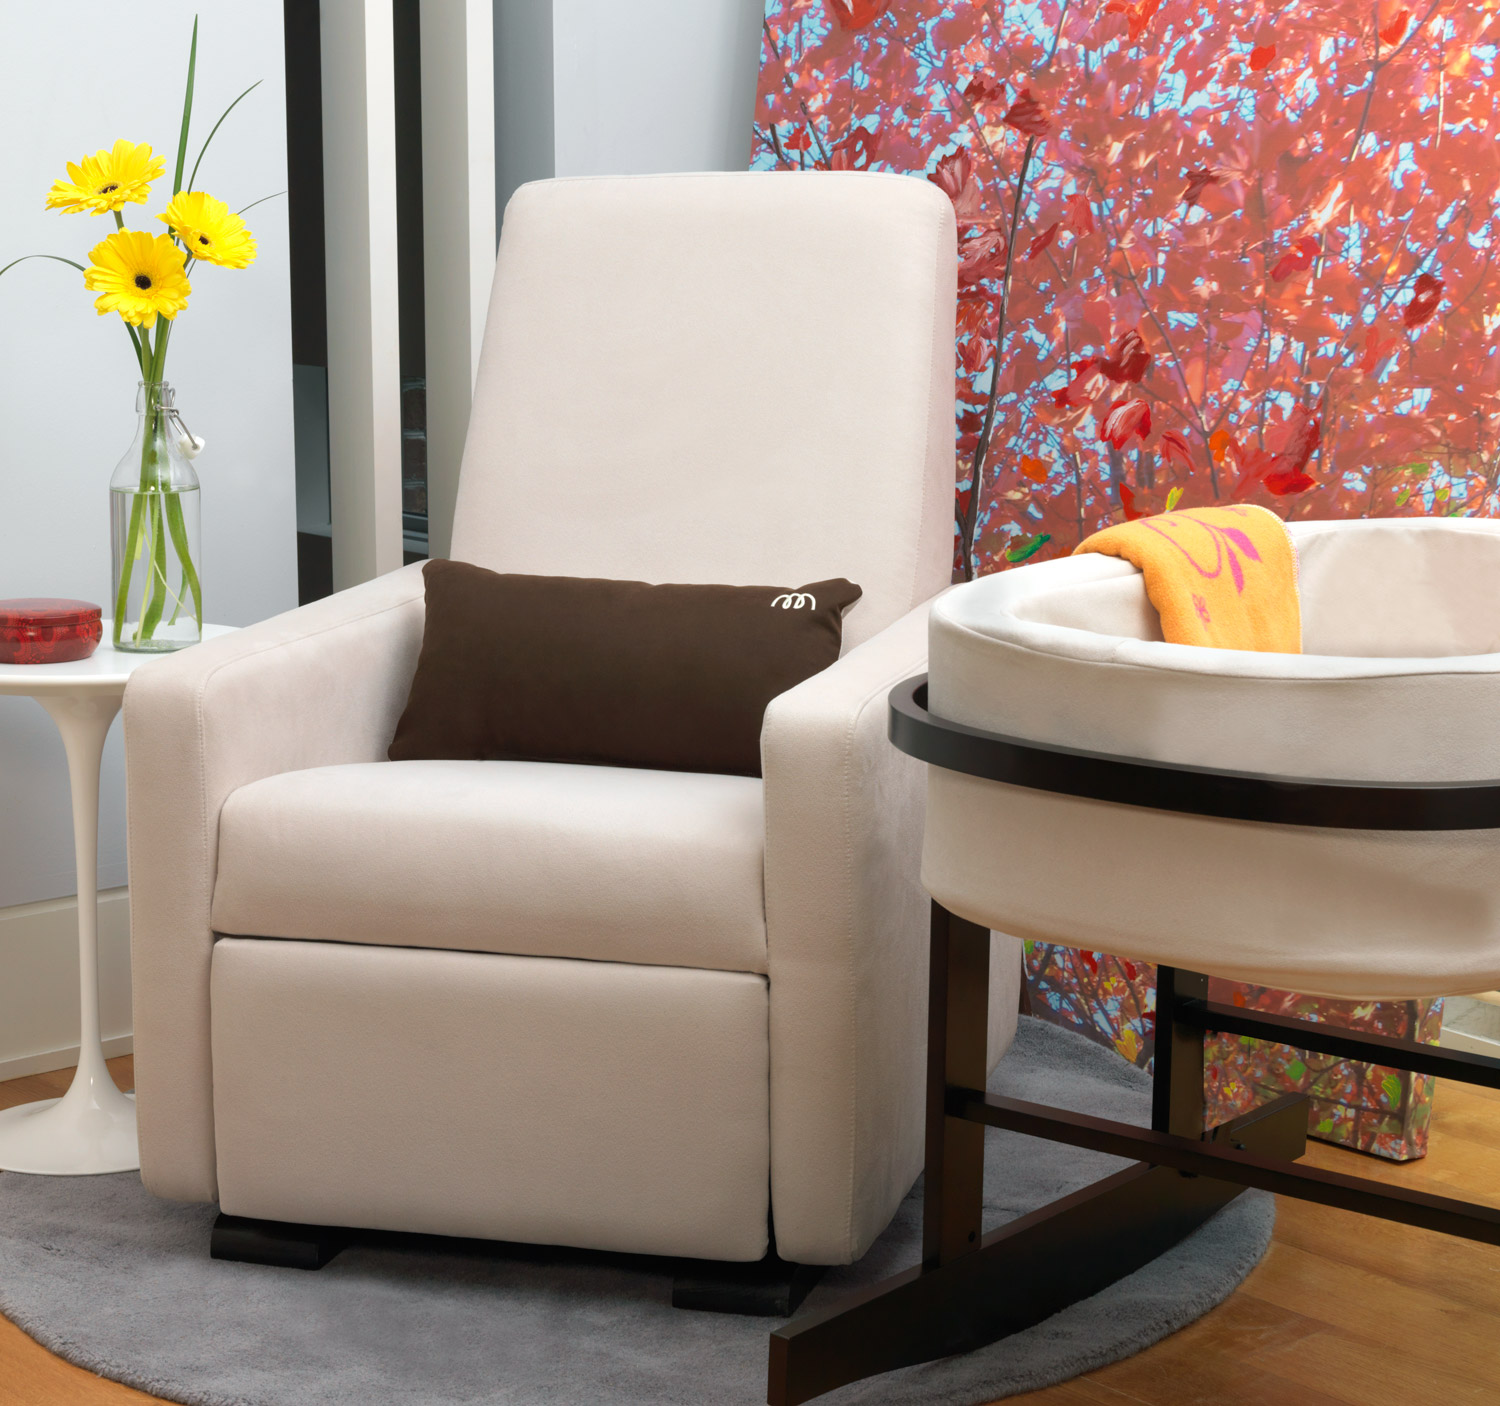 Image of: simple glider recliner chair ideas